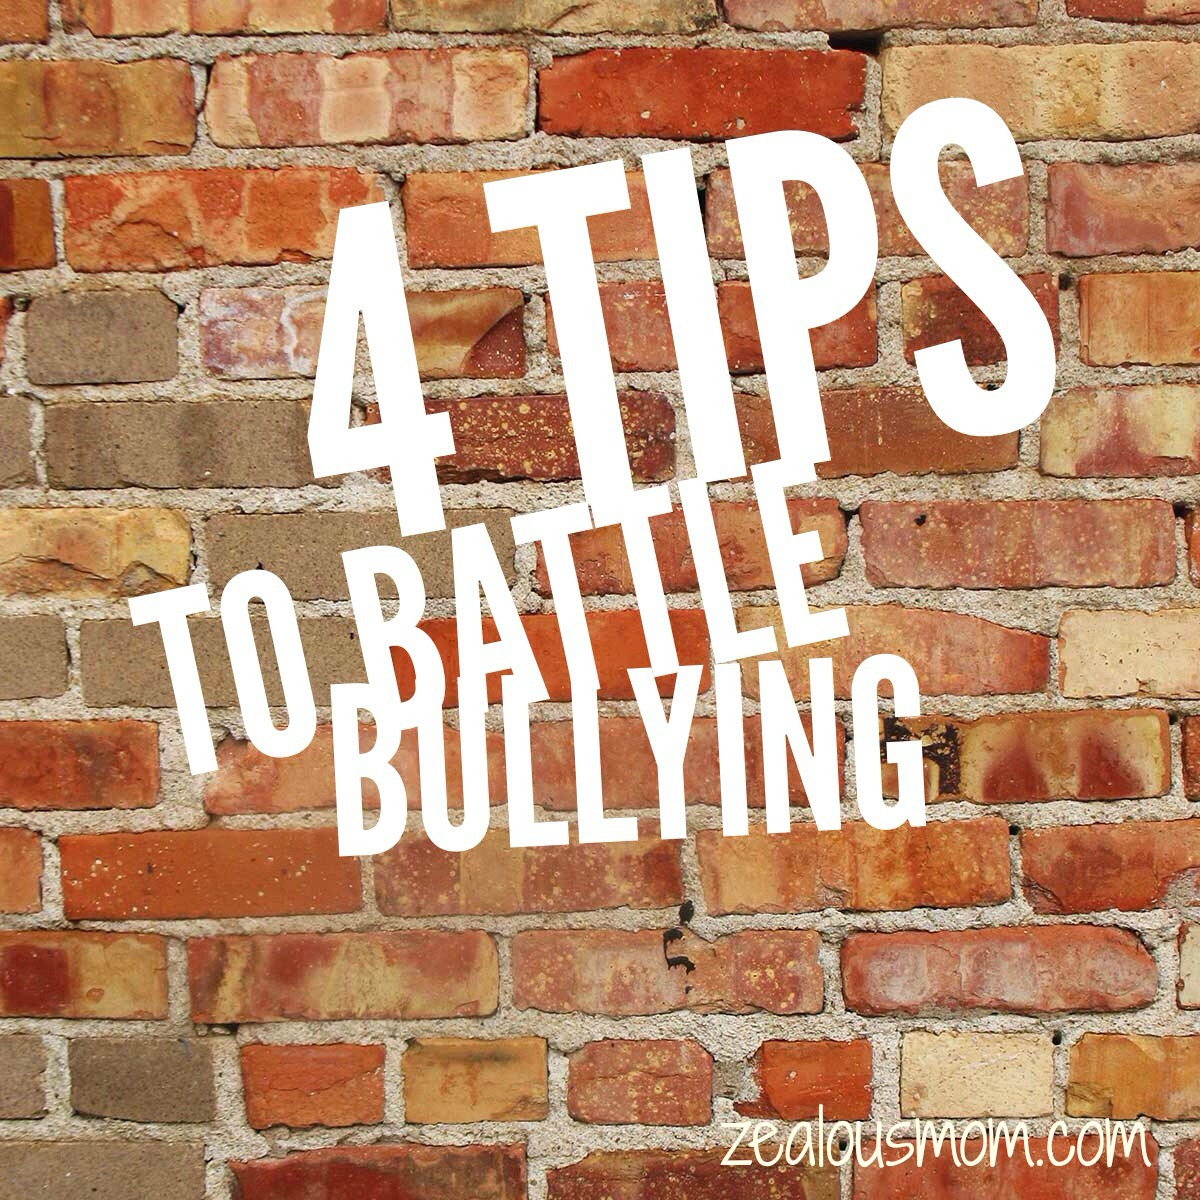 4 Tips to Battle Bullying